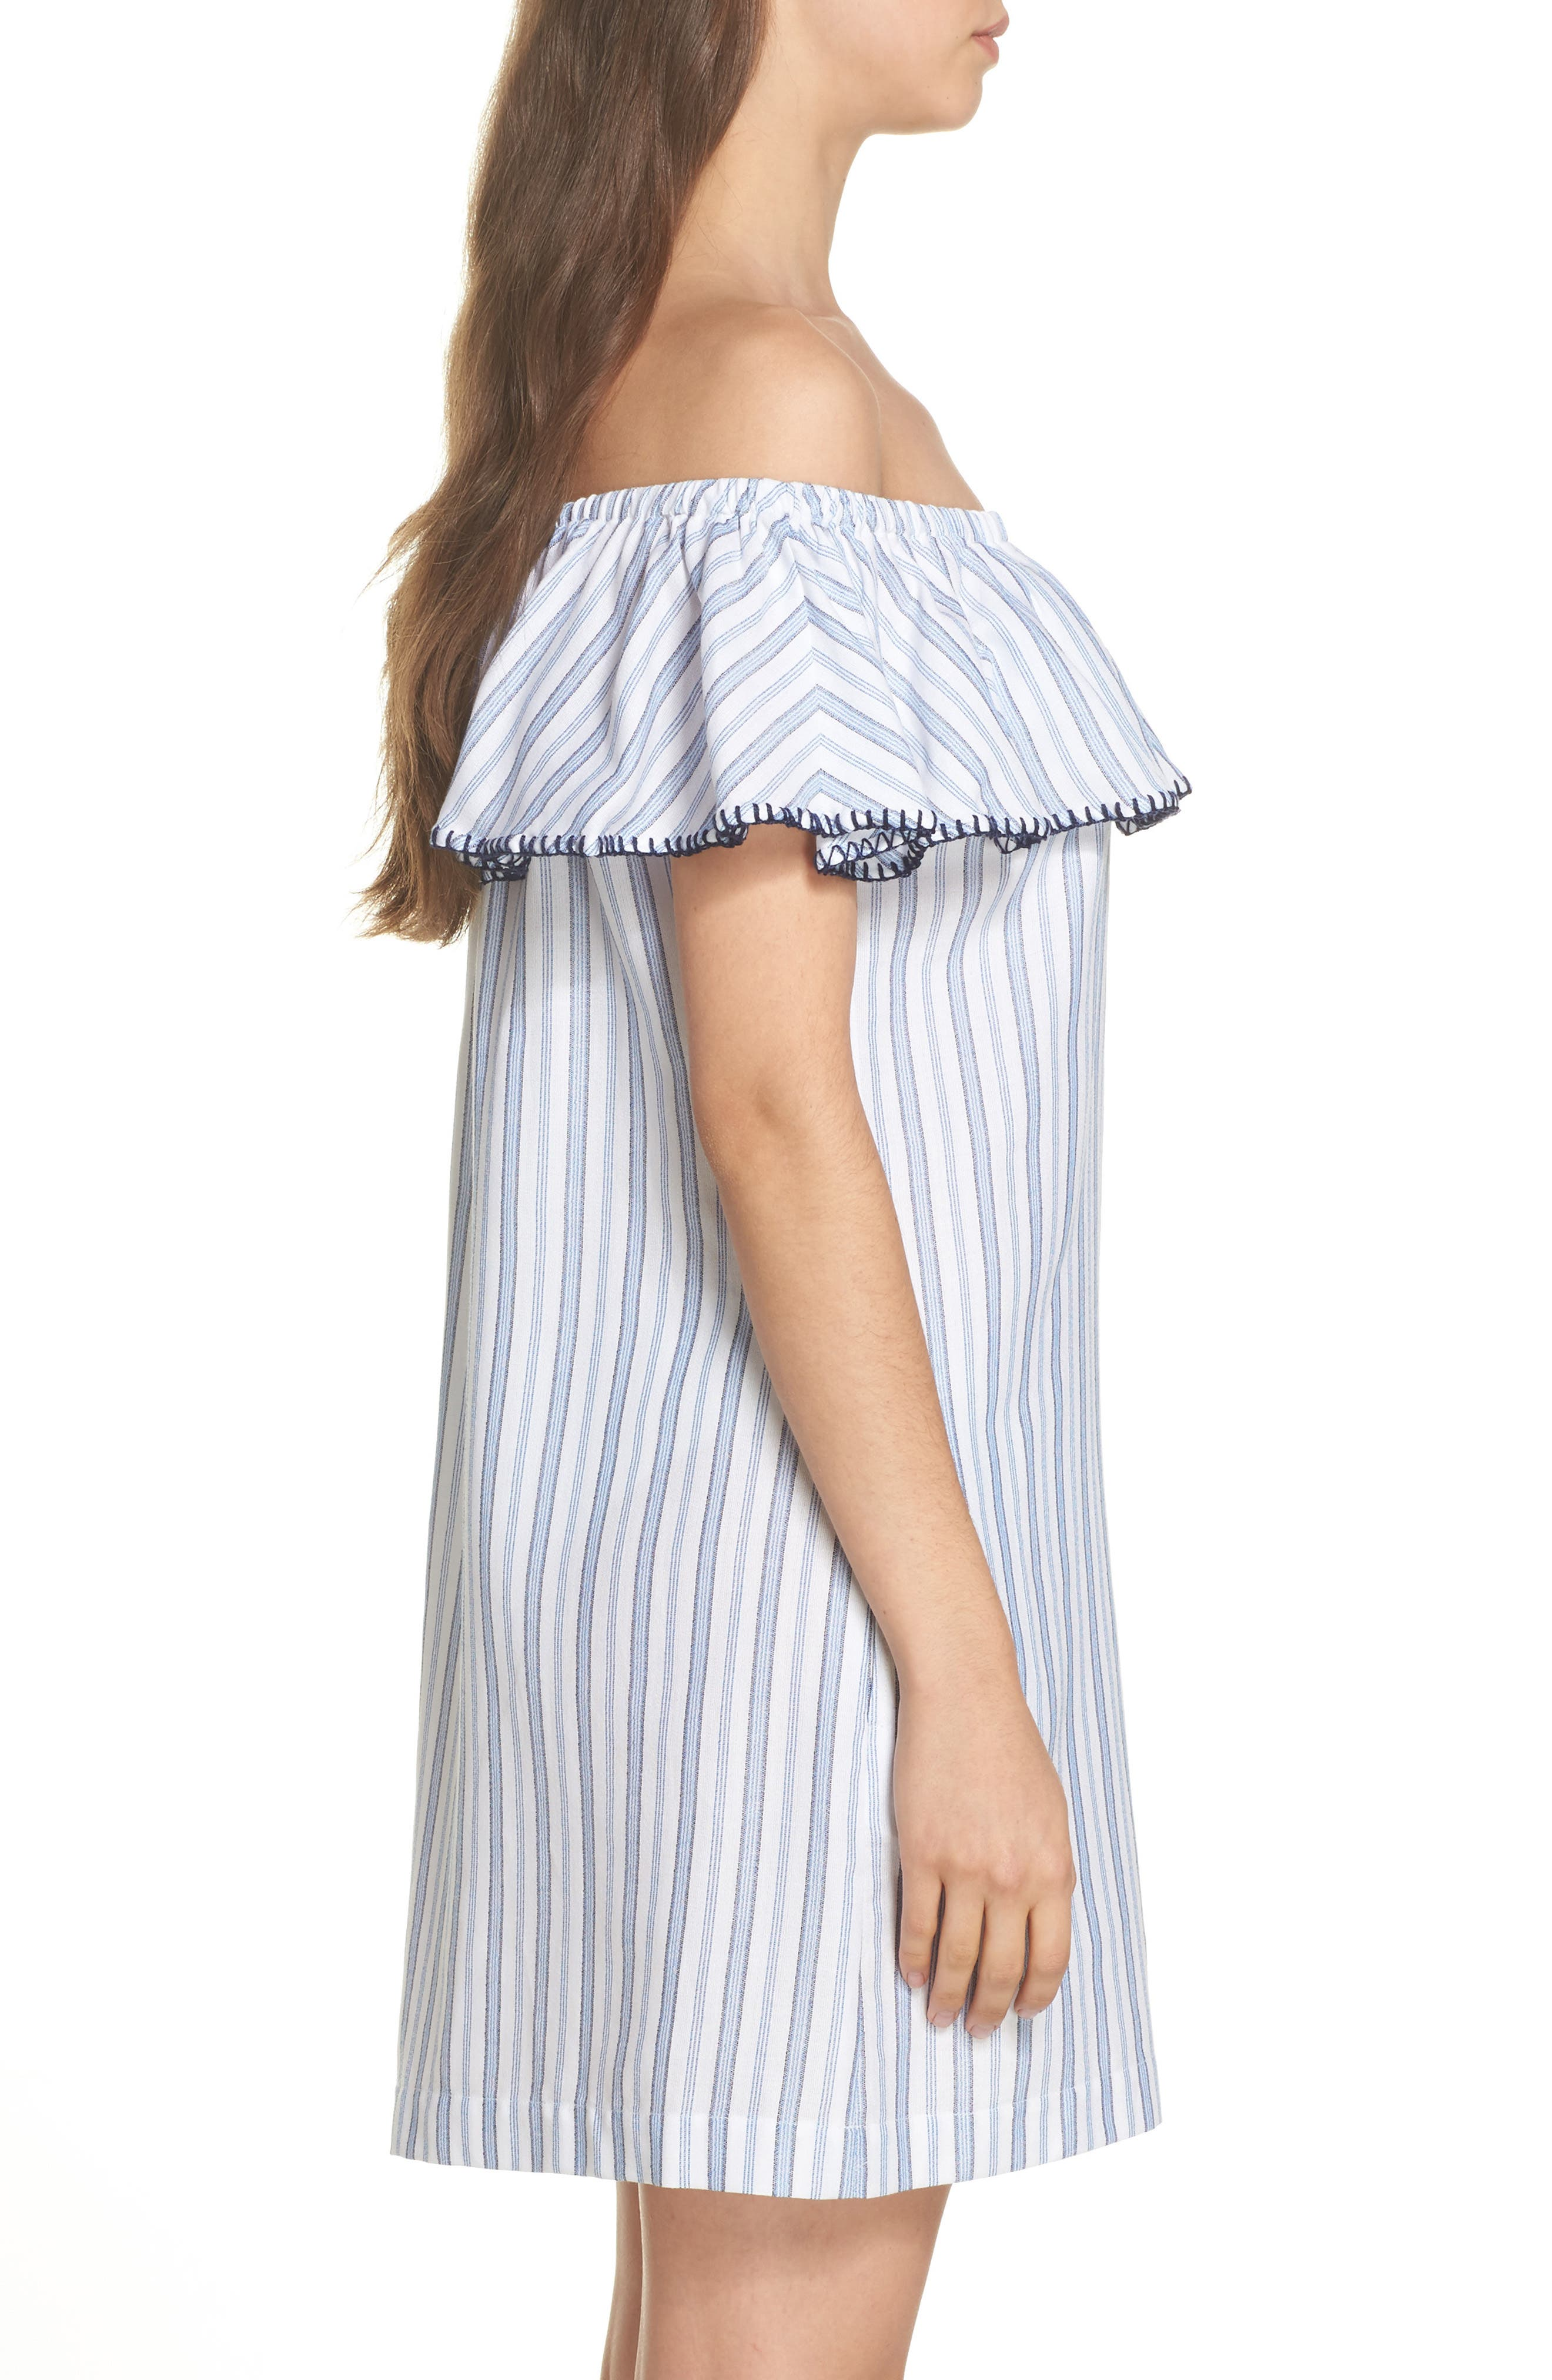 Ticking Stripe Off the Shoulder Cover-Up Dress,                             Alternate thumbnail 3, color,                             100